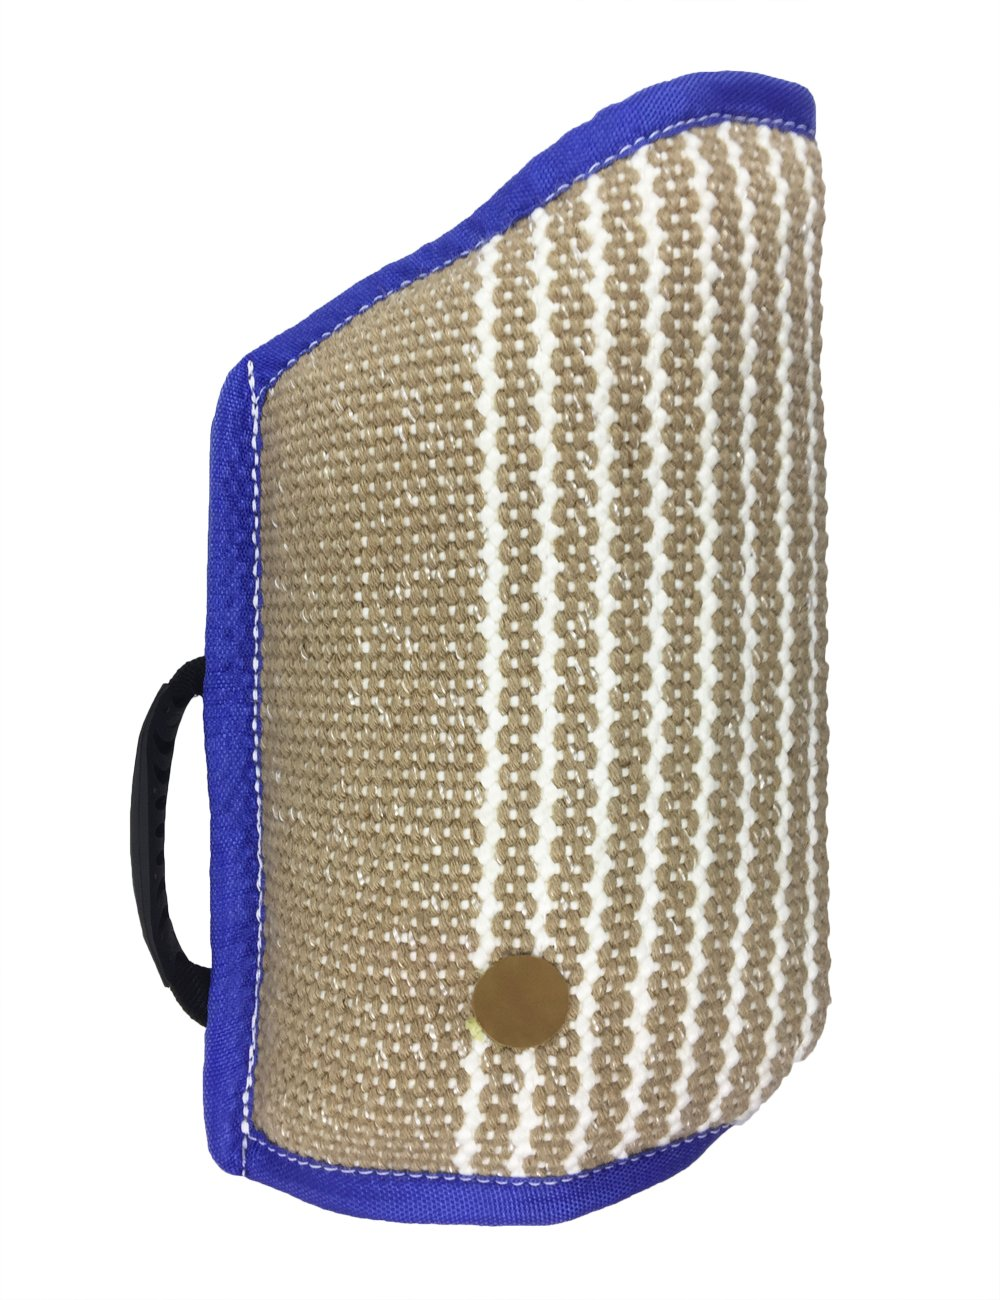 Dog Bite Sleeve Jute Tugs Entry Level for Arm Protection Training Playing Exercising,Blue by Tealover